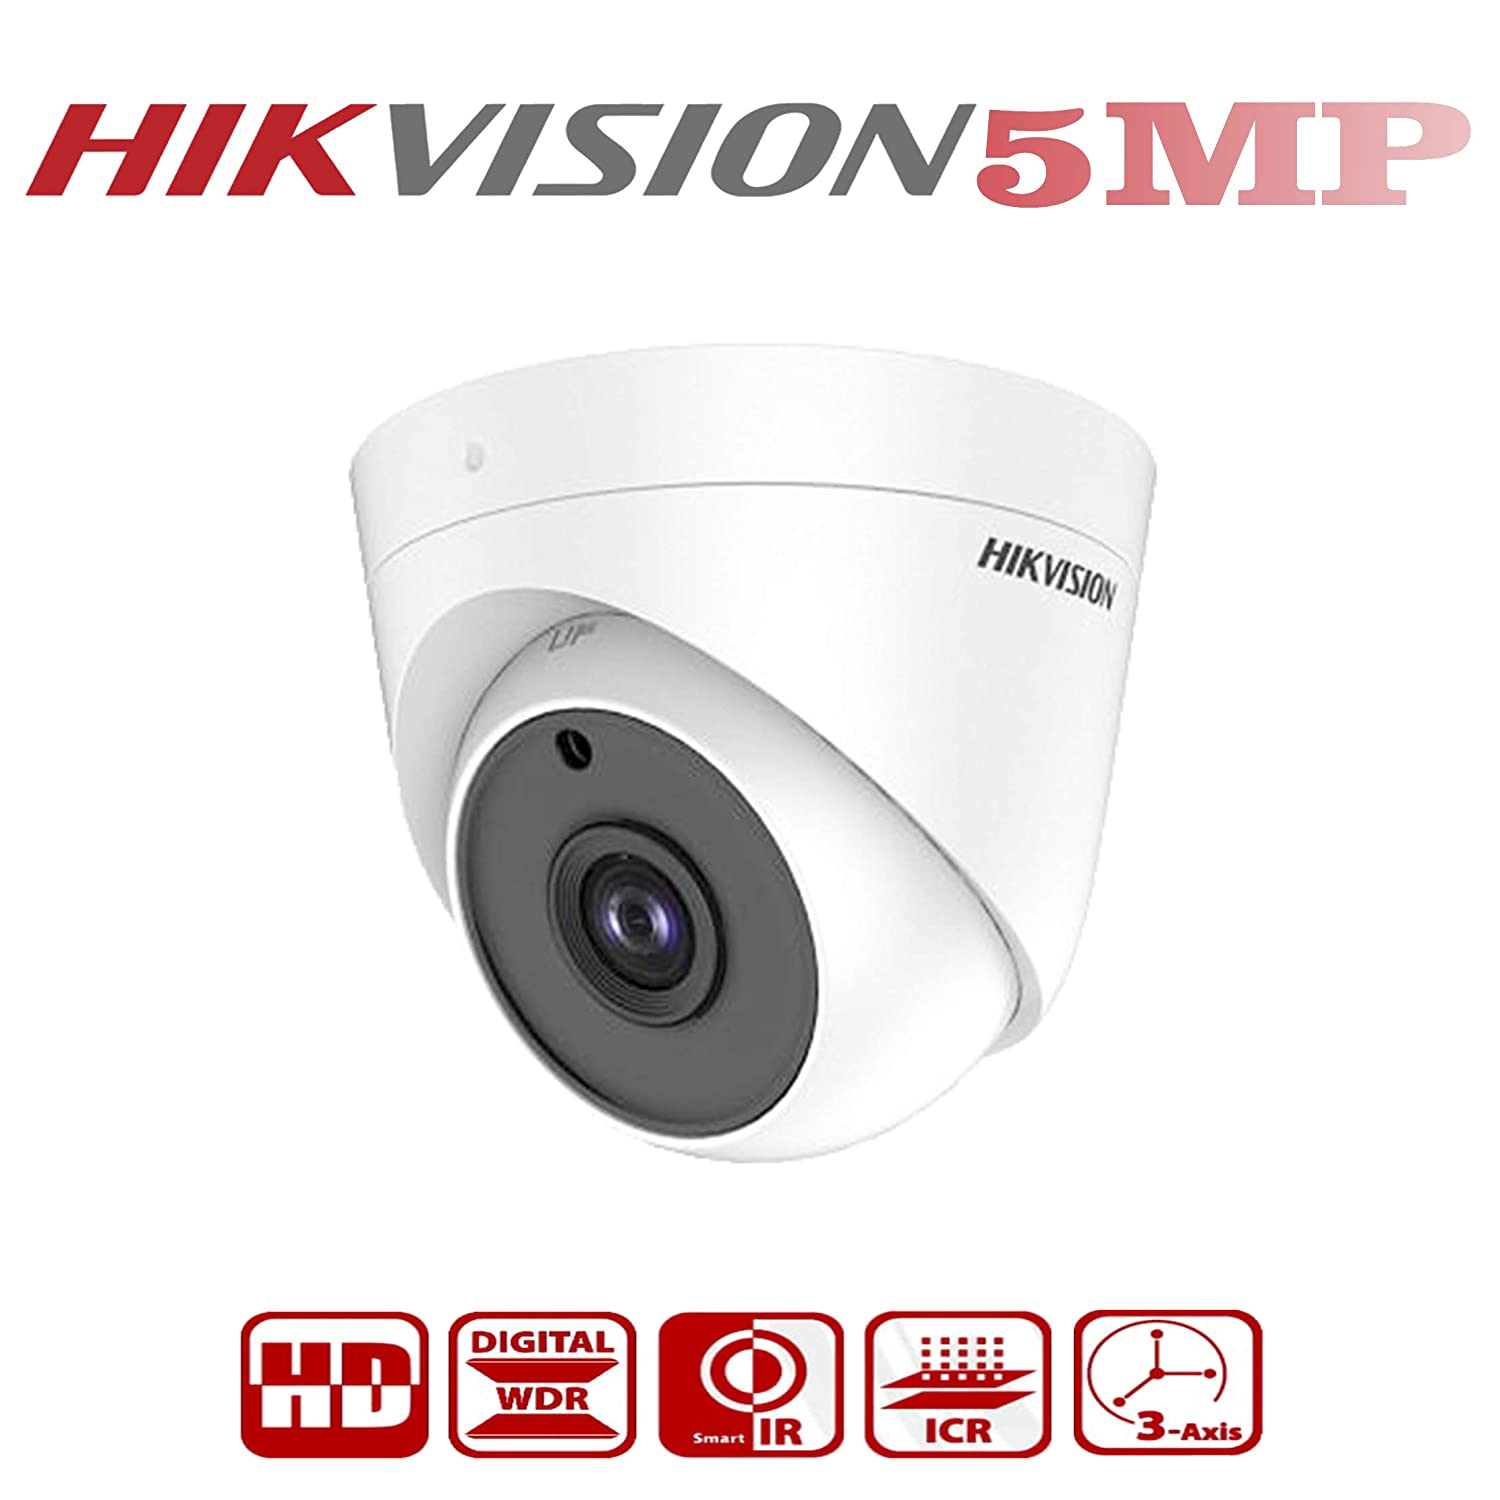 HIKVISION 5MP Ultra HD Indoor Dome Camera DS-2CE5AHOT-ITPF Night Vision (White). Brand: HIKVISION